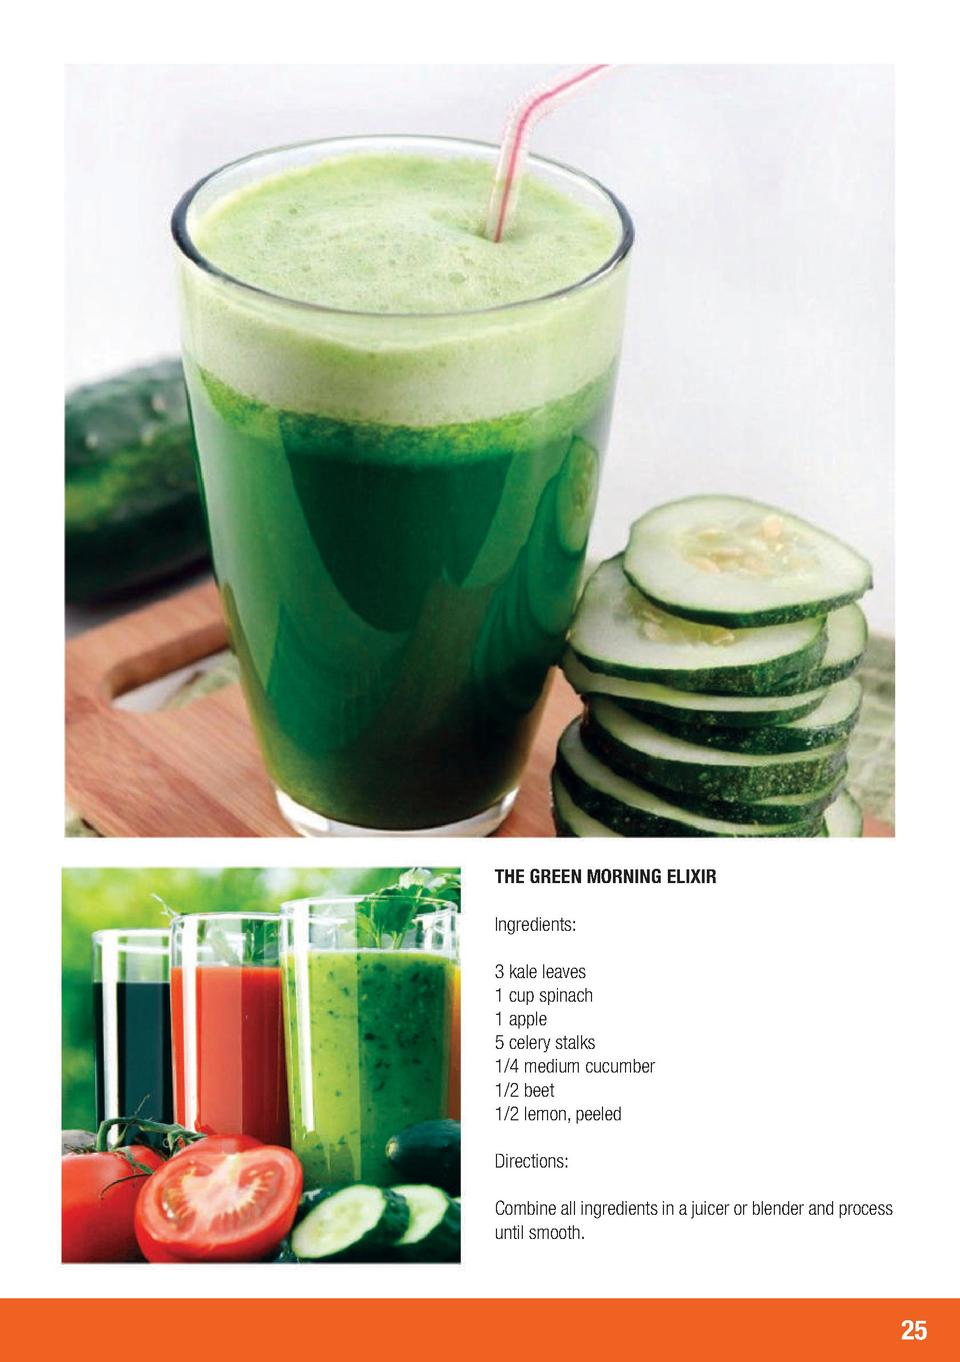 THE GREEN MORNING ELIXIR Ingredients  3 kale leaves 1 cup spinach 1 apple 5 celery stalks 1 4 medium cucumber 1 2 beet 1 2...